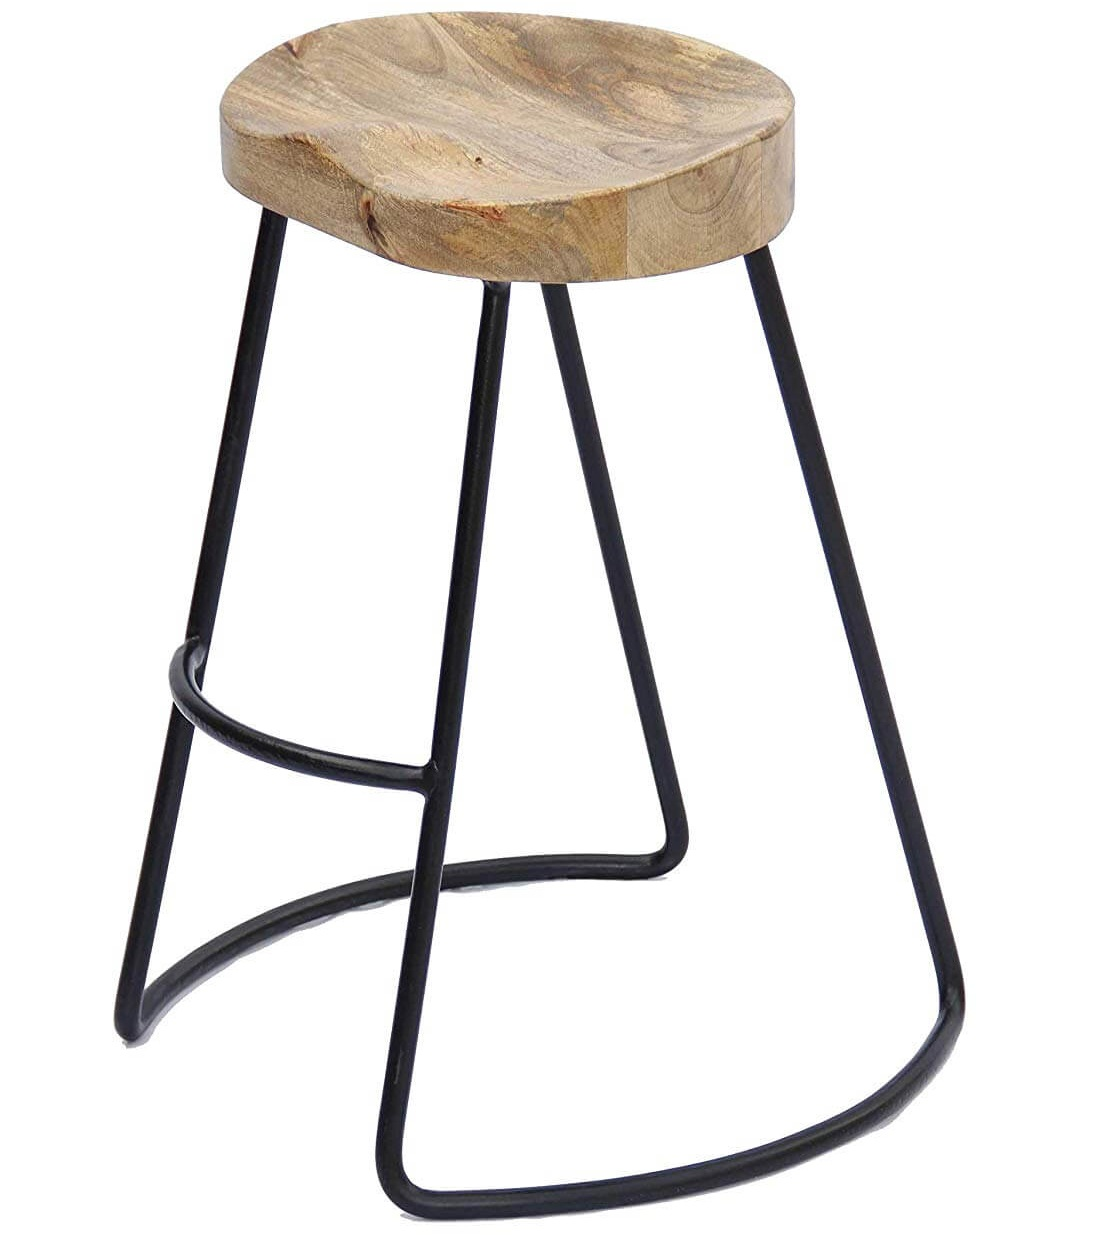 The Urban Port Antique Colonial  Barstool with Iron Legs